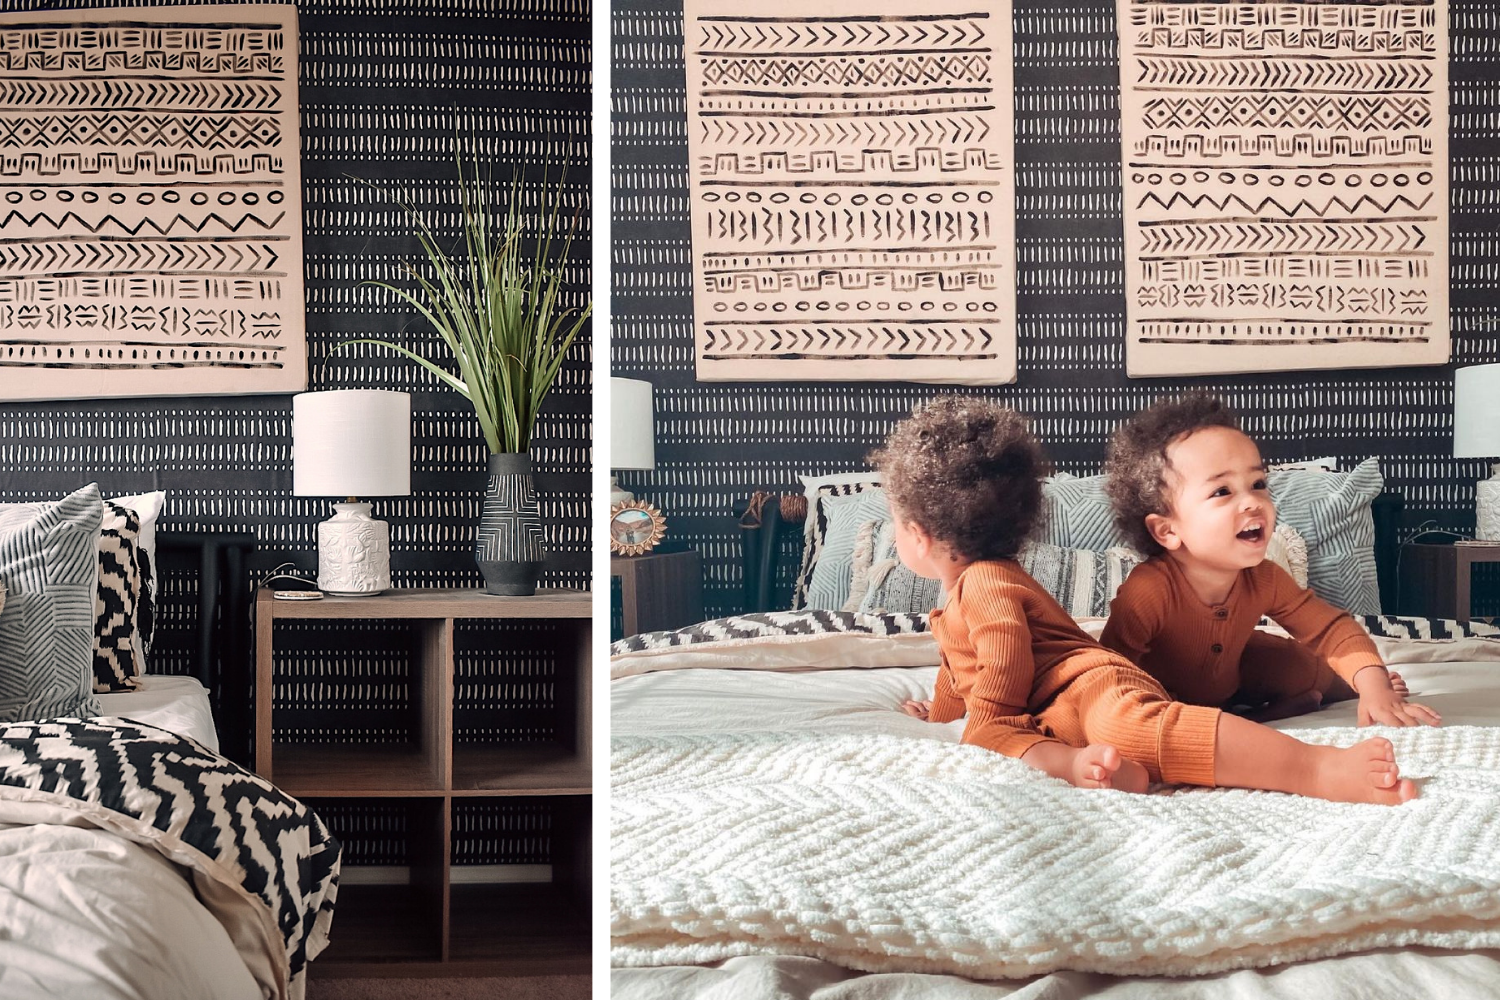 Two toddlers on a bed in a room with an expressive wallpaper pattern